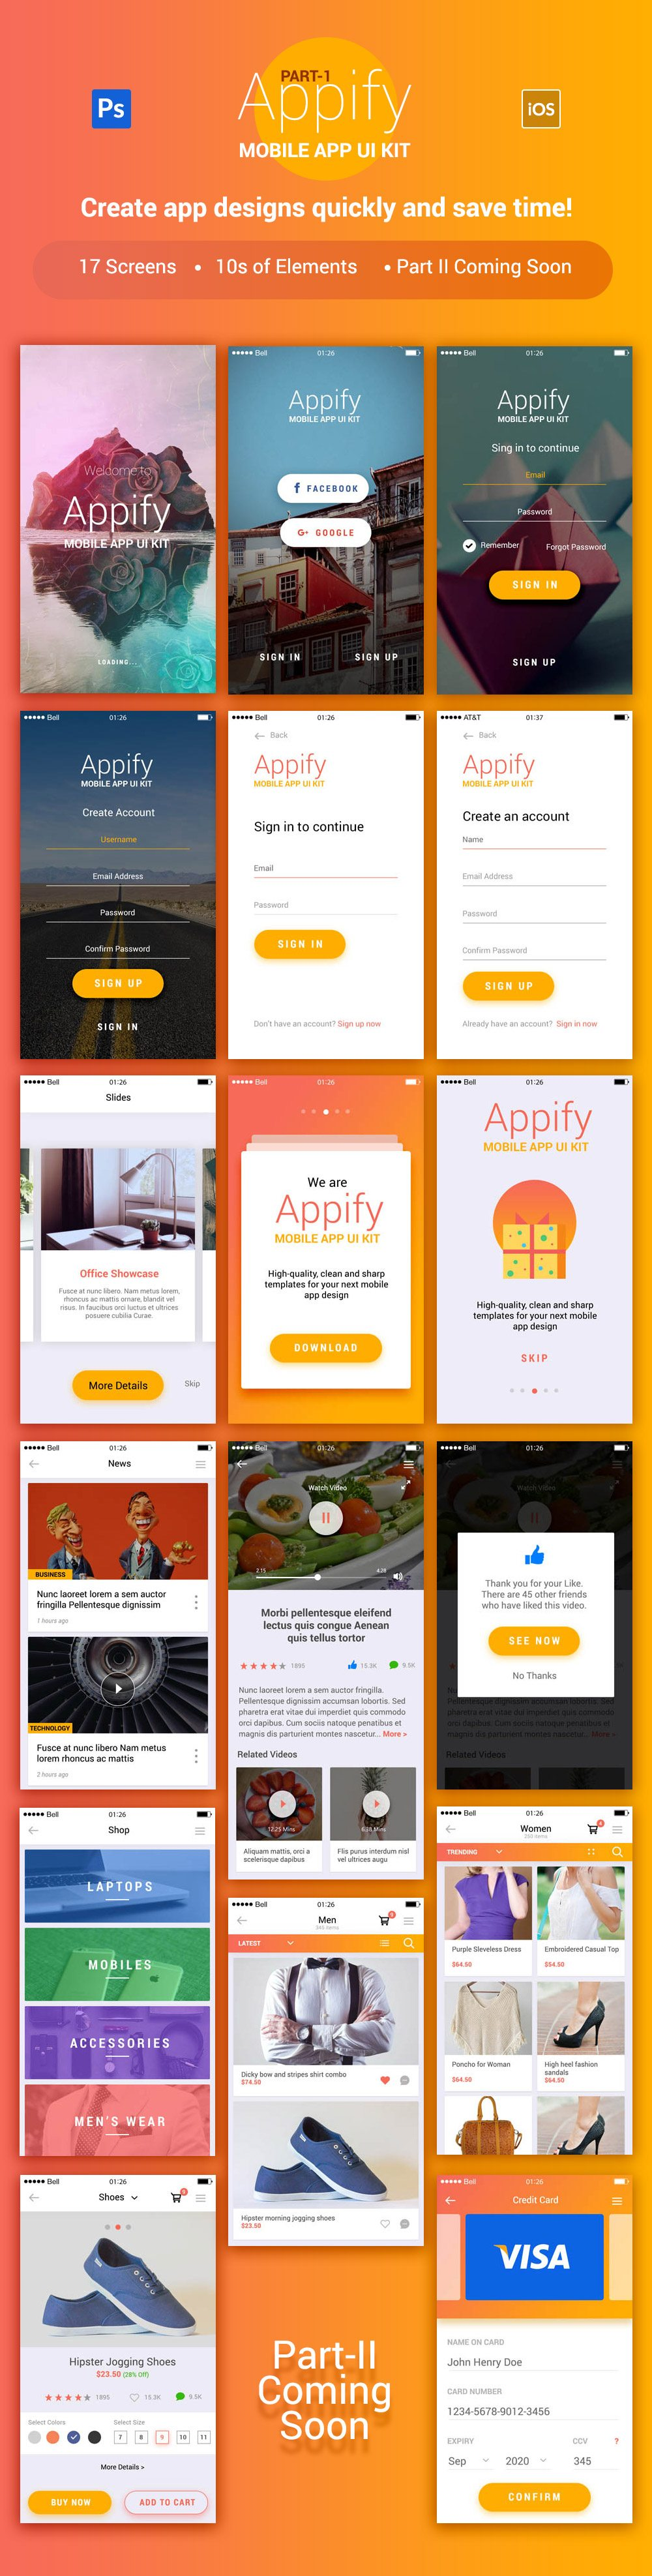 Creative Appify: Free Mobile App UI Kit Vol.1